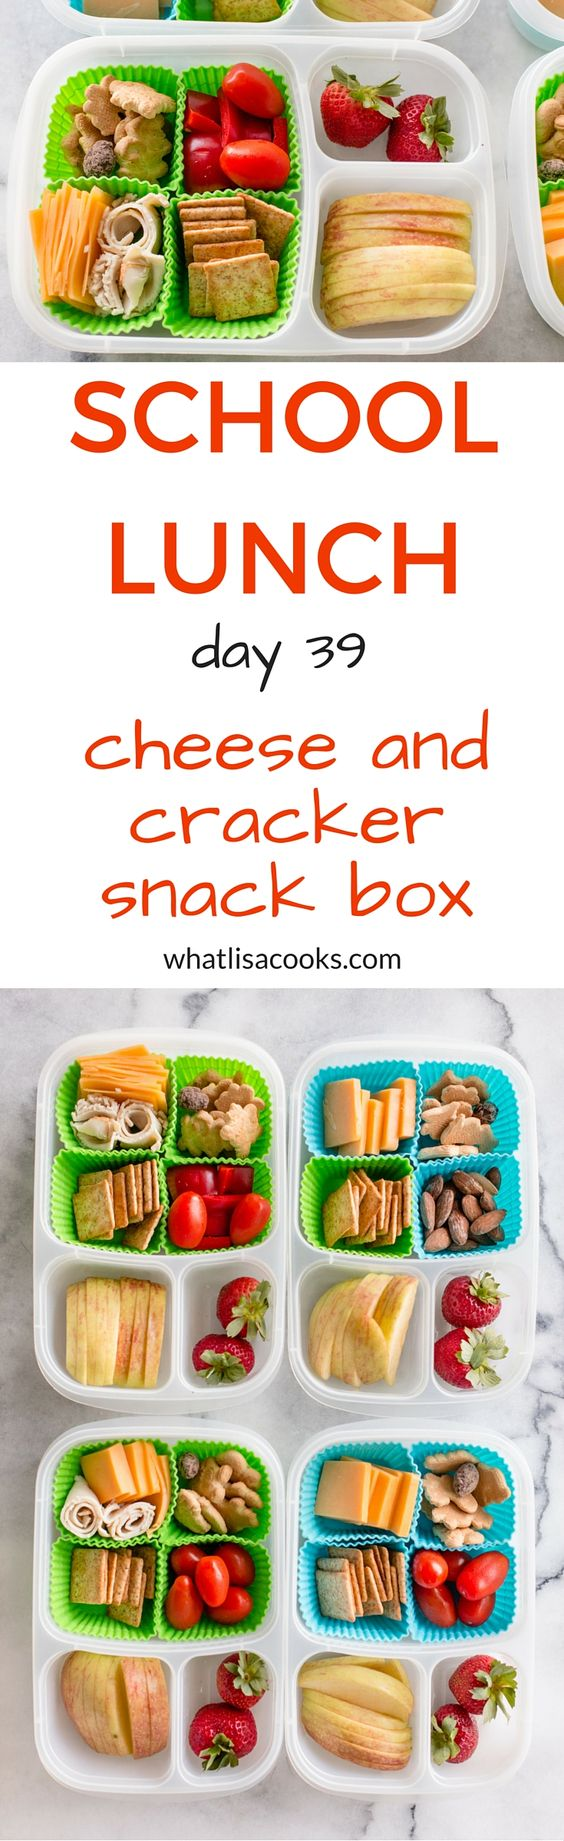 School Lunch Day 39: Cheese & cracker snack box: